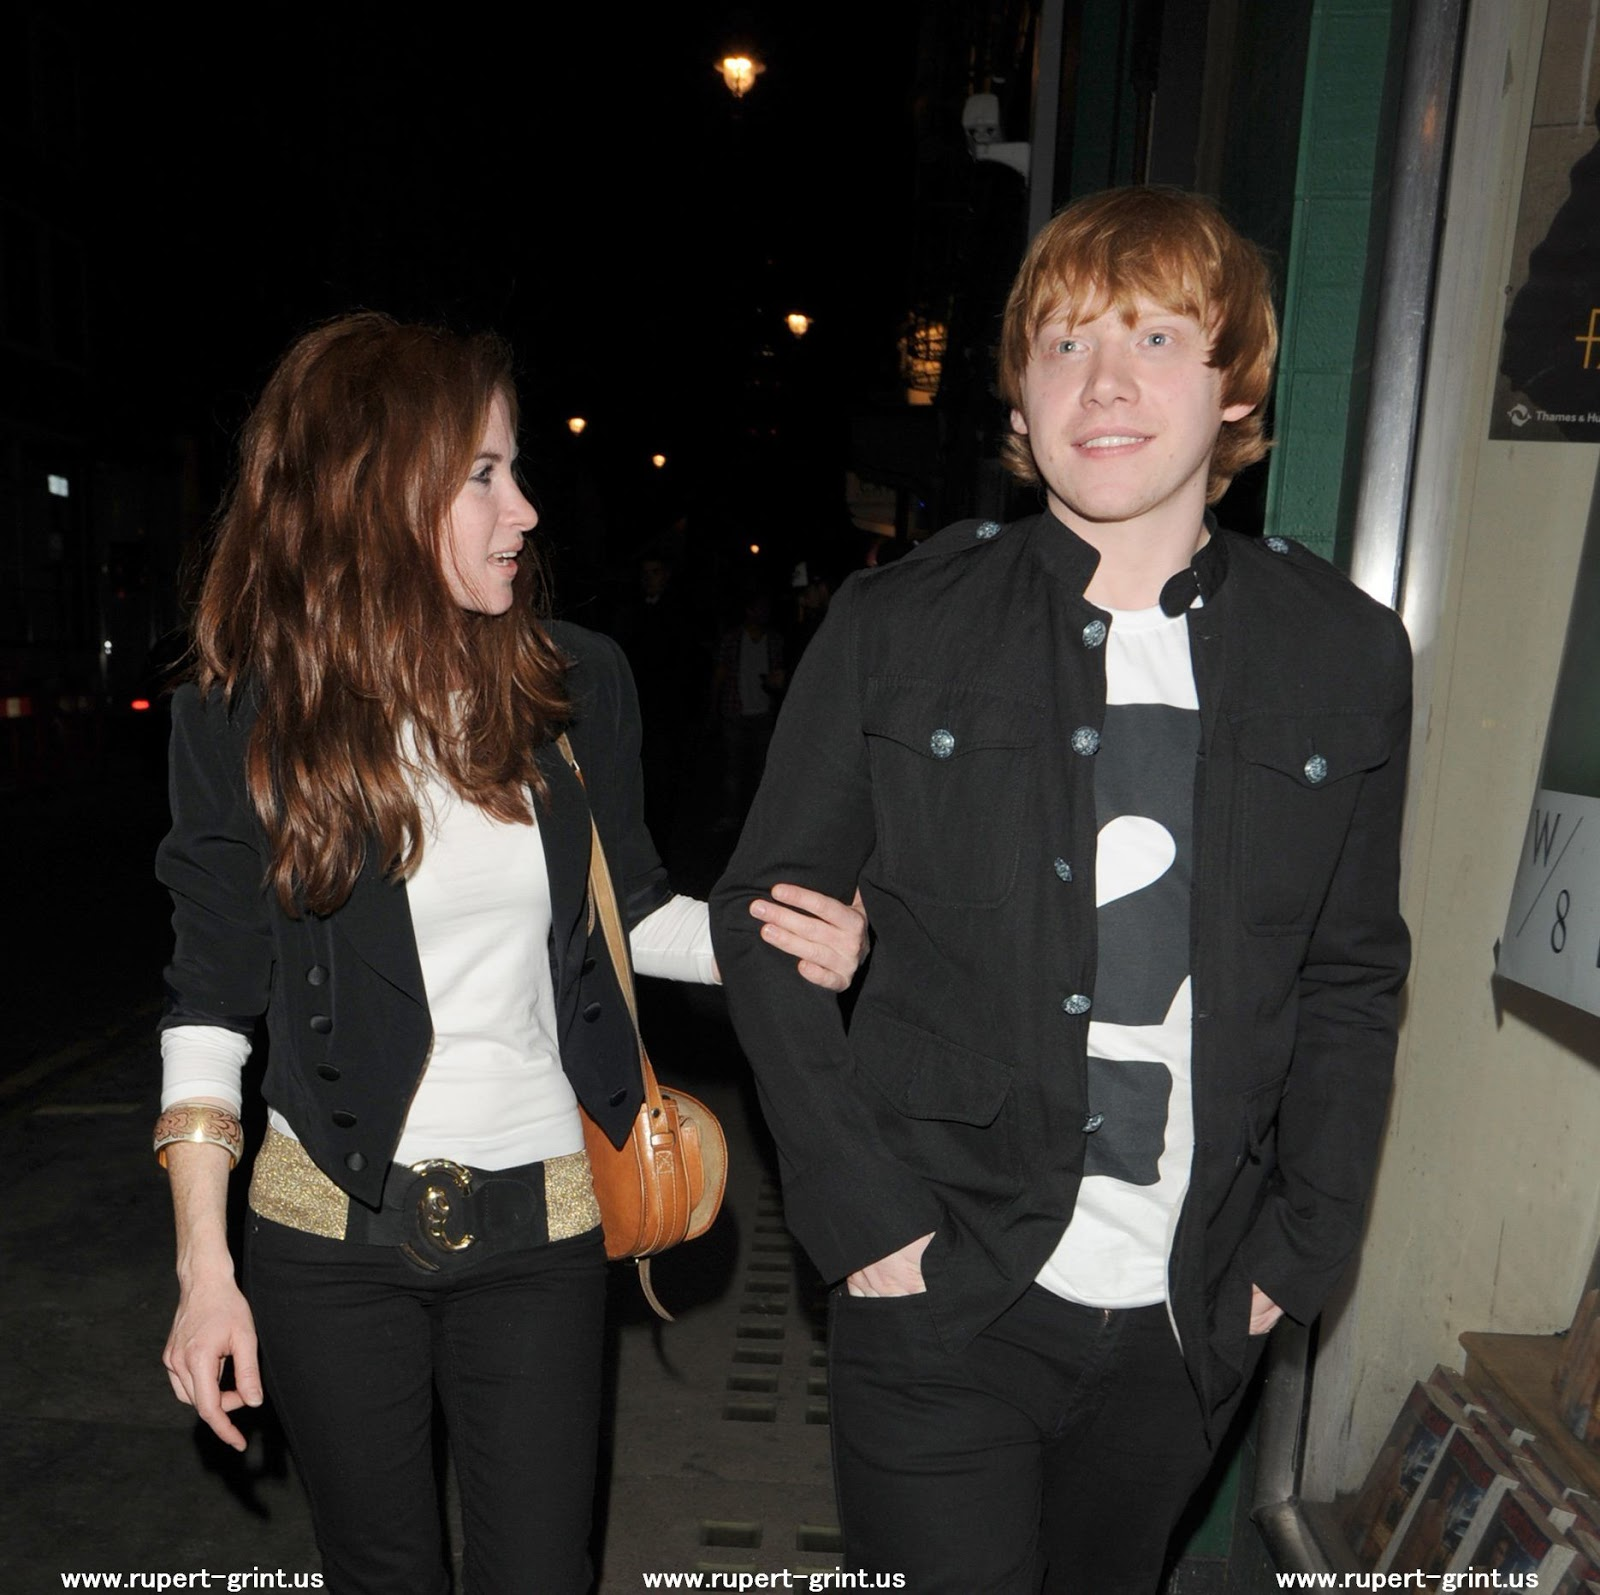 Harry Maguire Wallpaper: Rupert Grint With Girlfriend Pics,Images 2011